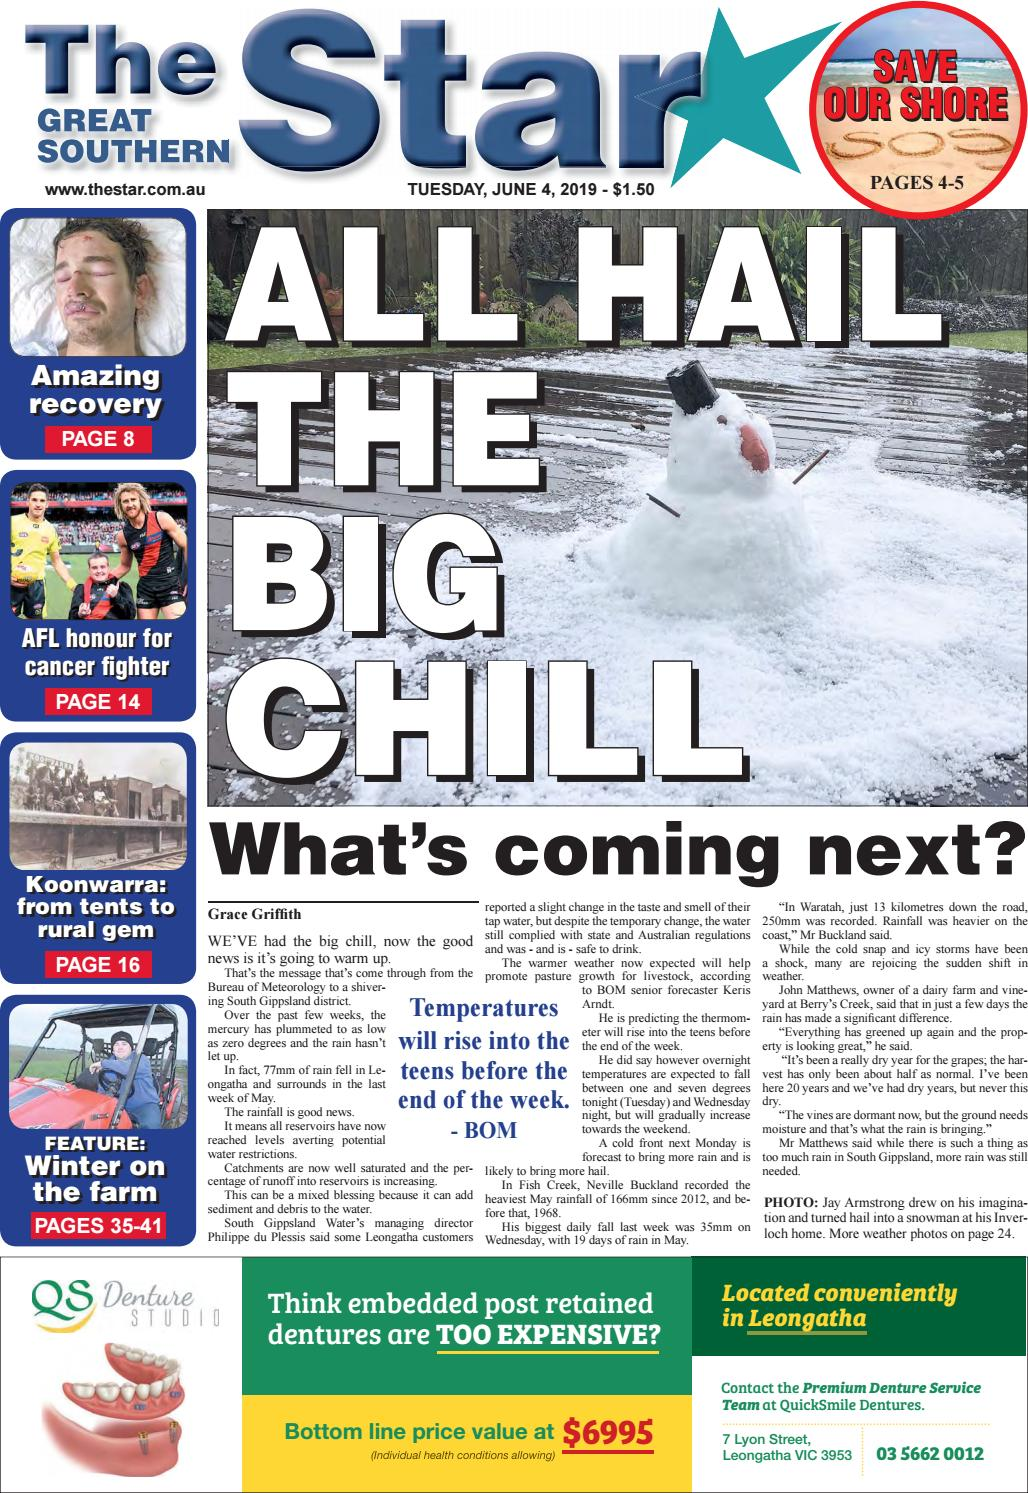 The Great Southern Star June 4, 2019 by The Great Southern